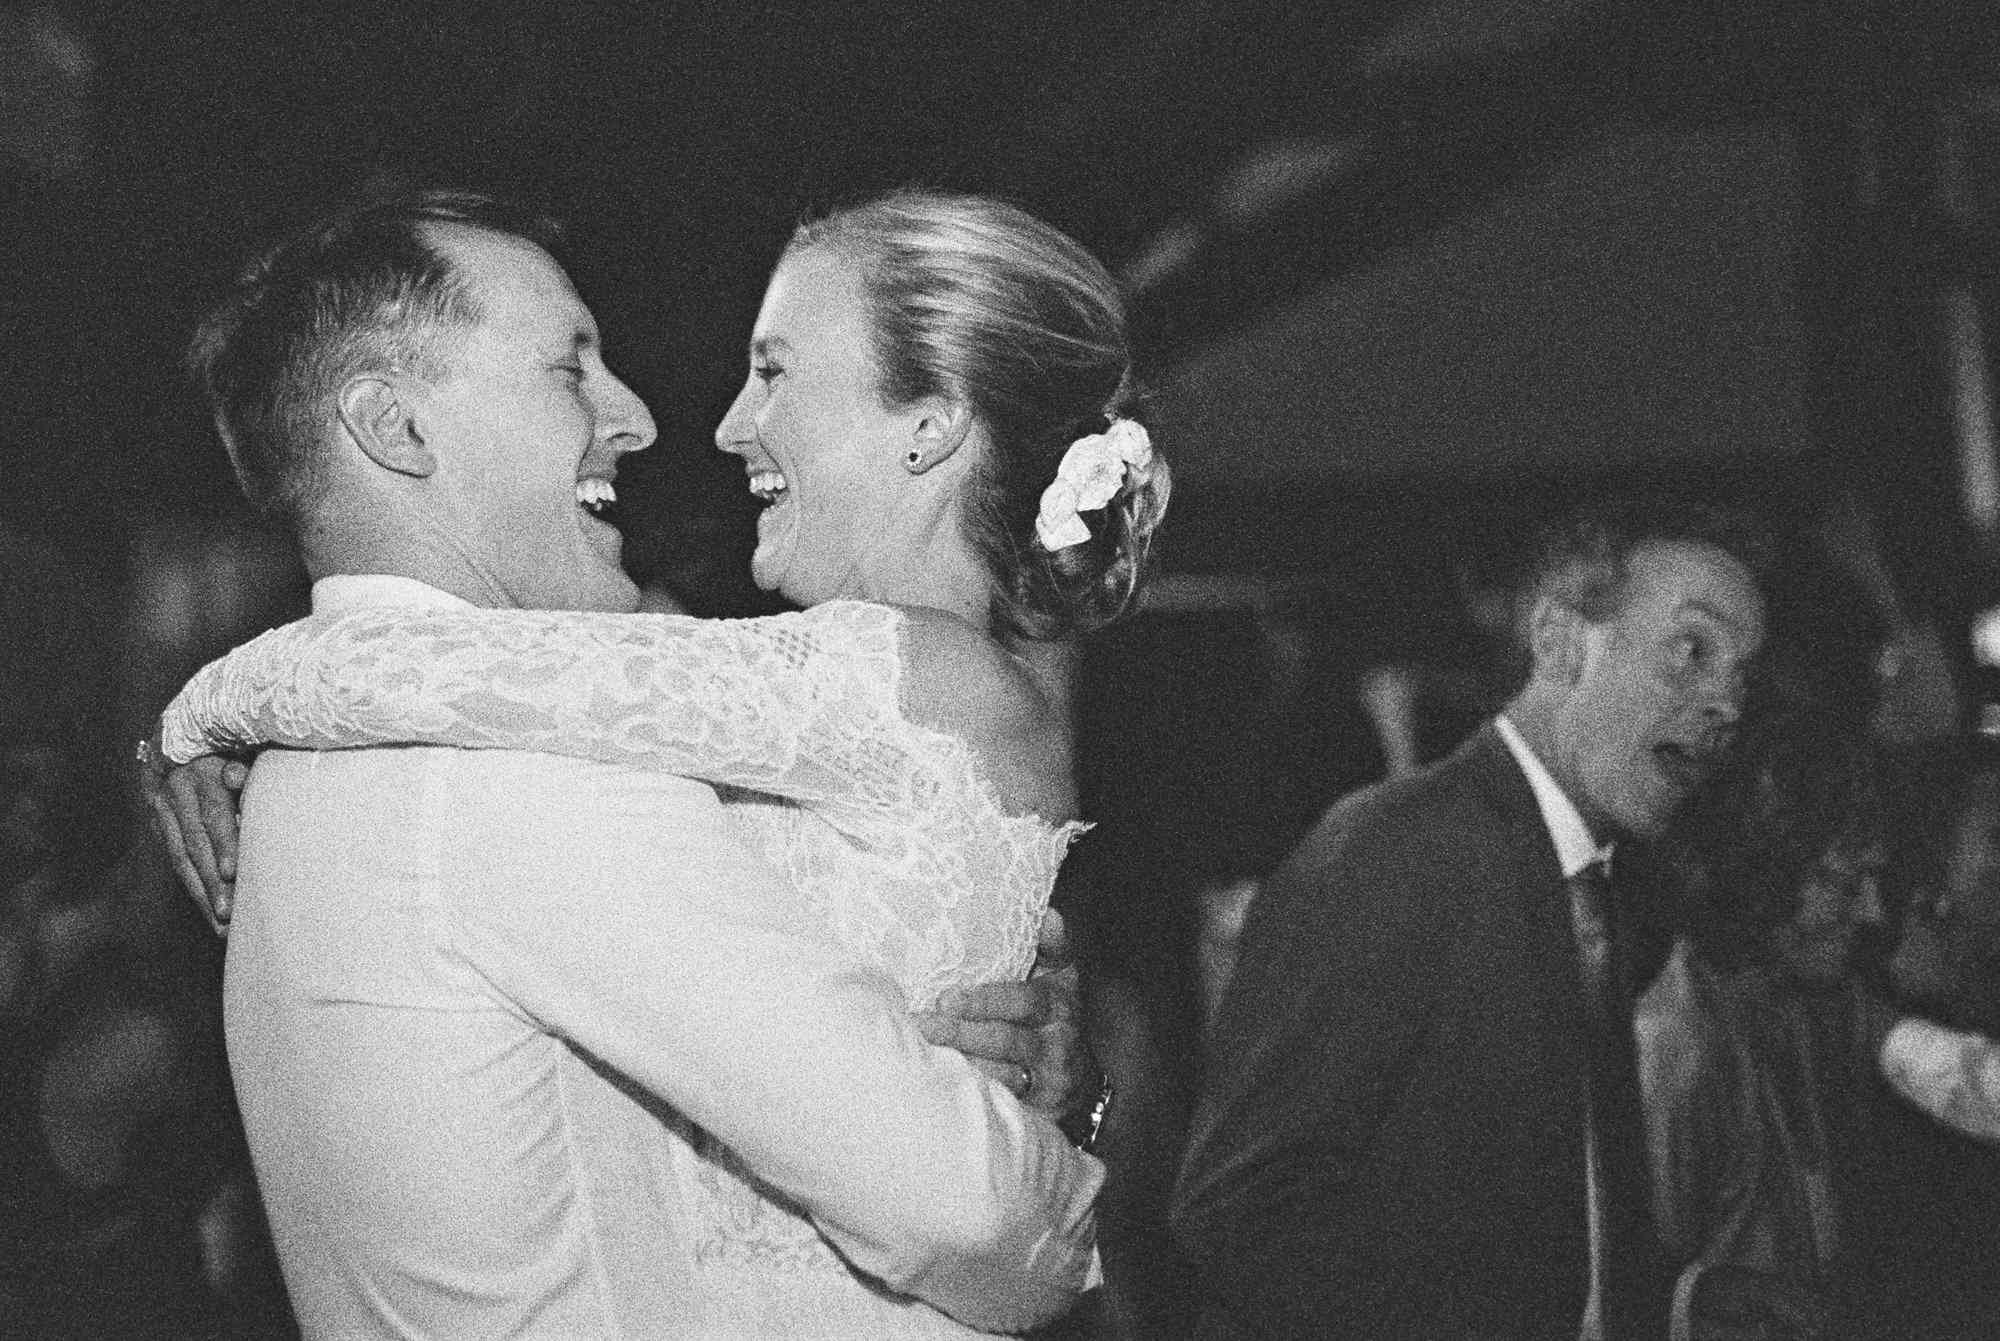 <p>couple on the dance floor</p><br><br>